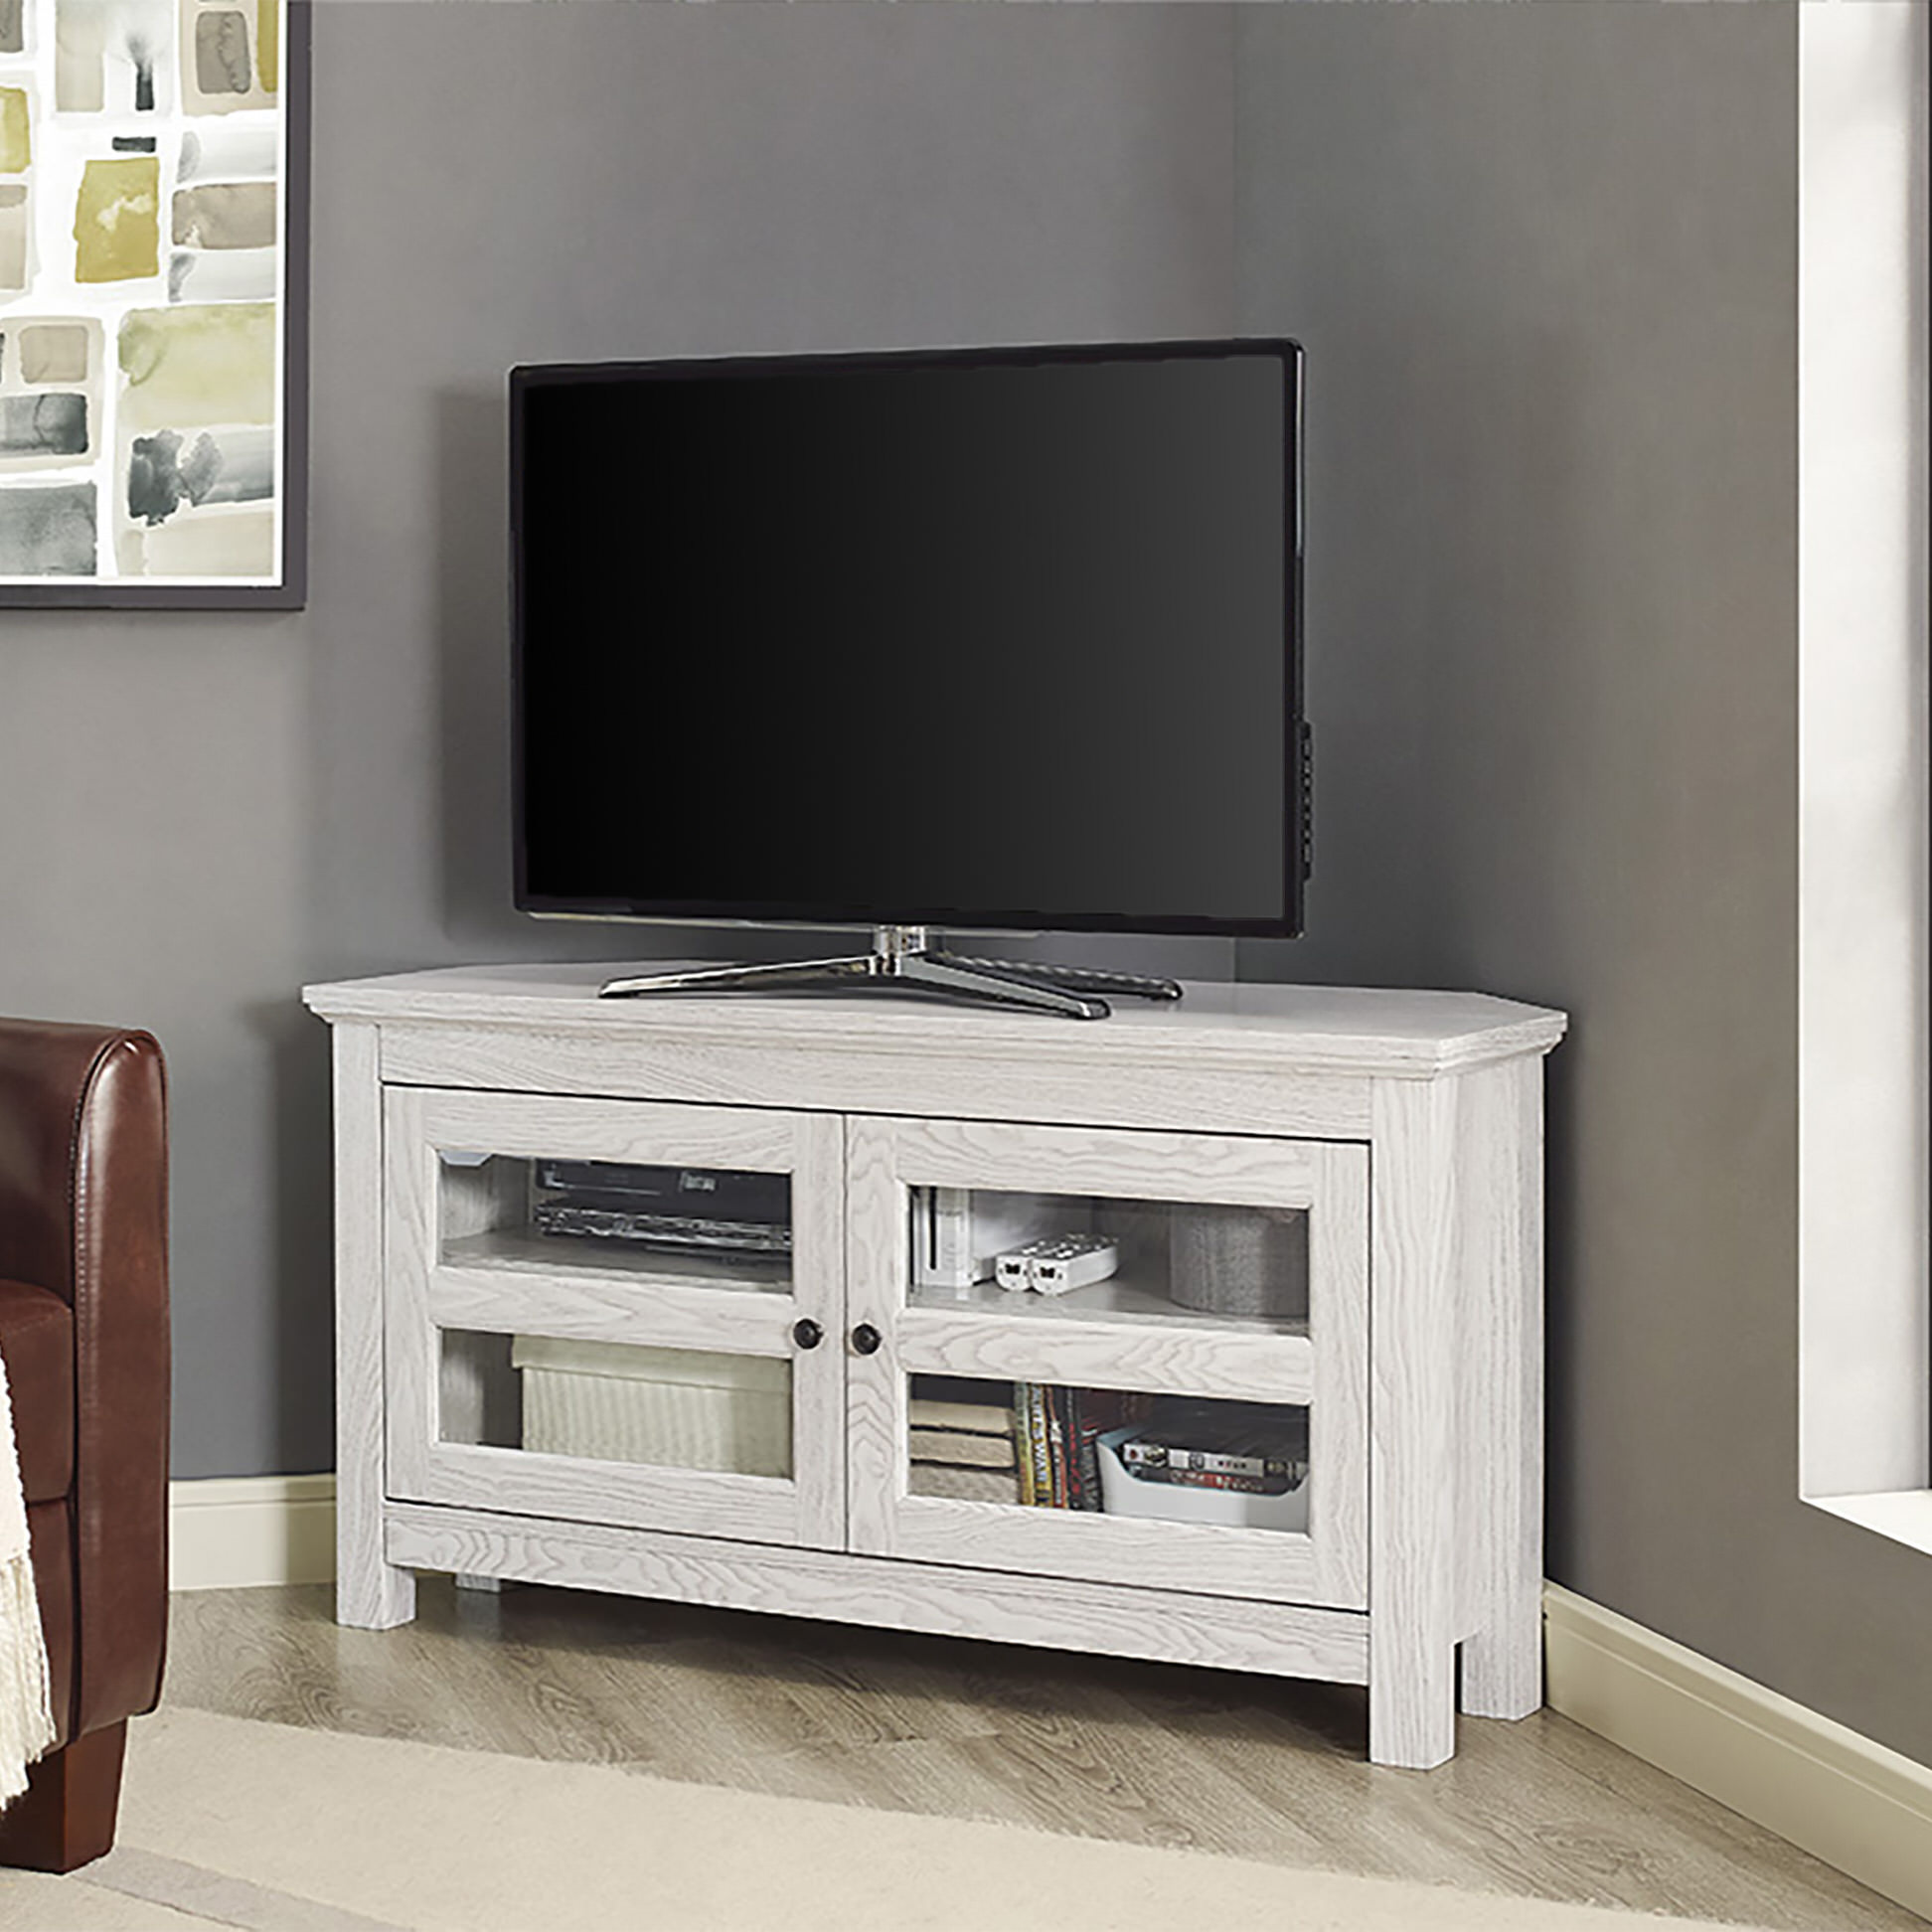 44 inch white wash wood tv stand by walker edison - Wood Corner Tv Stand